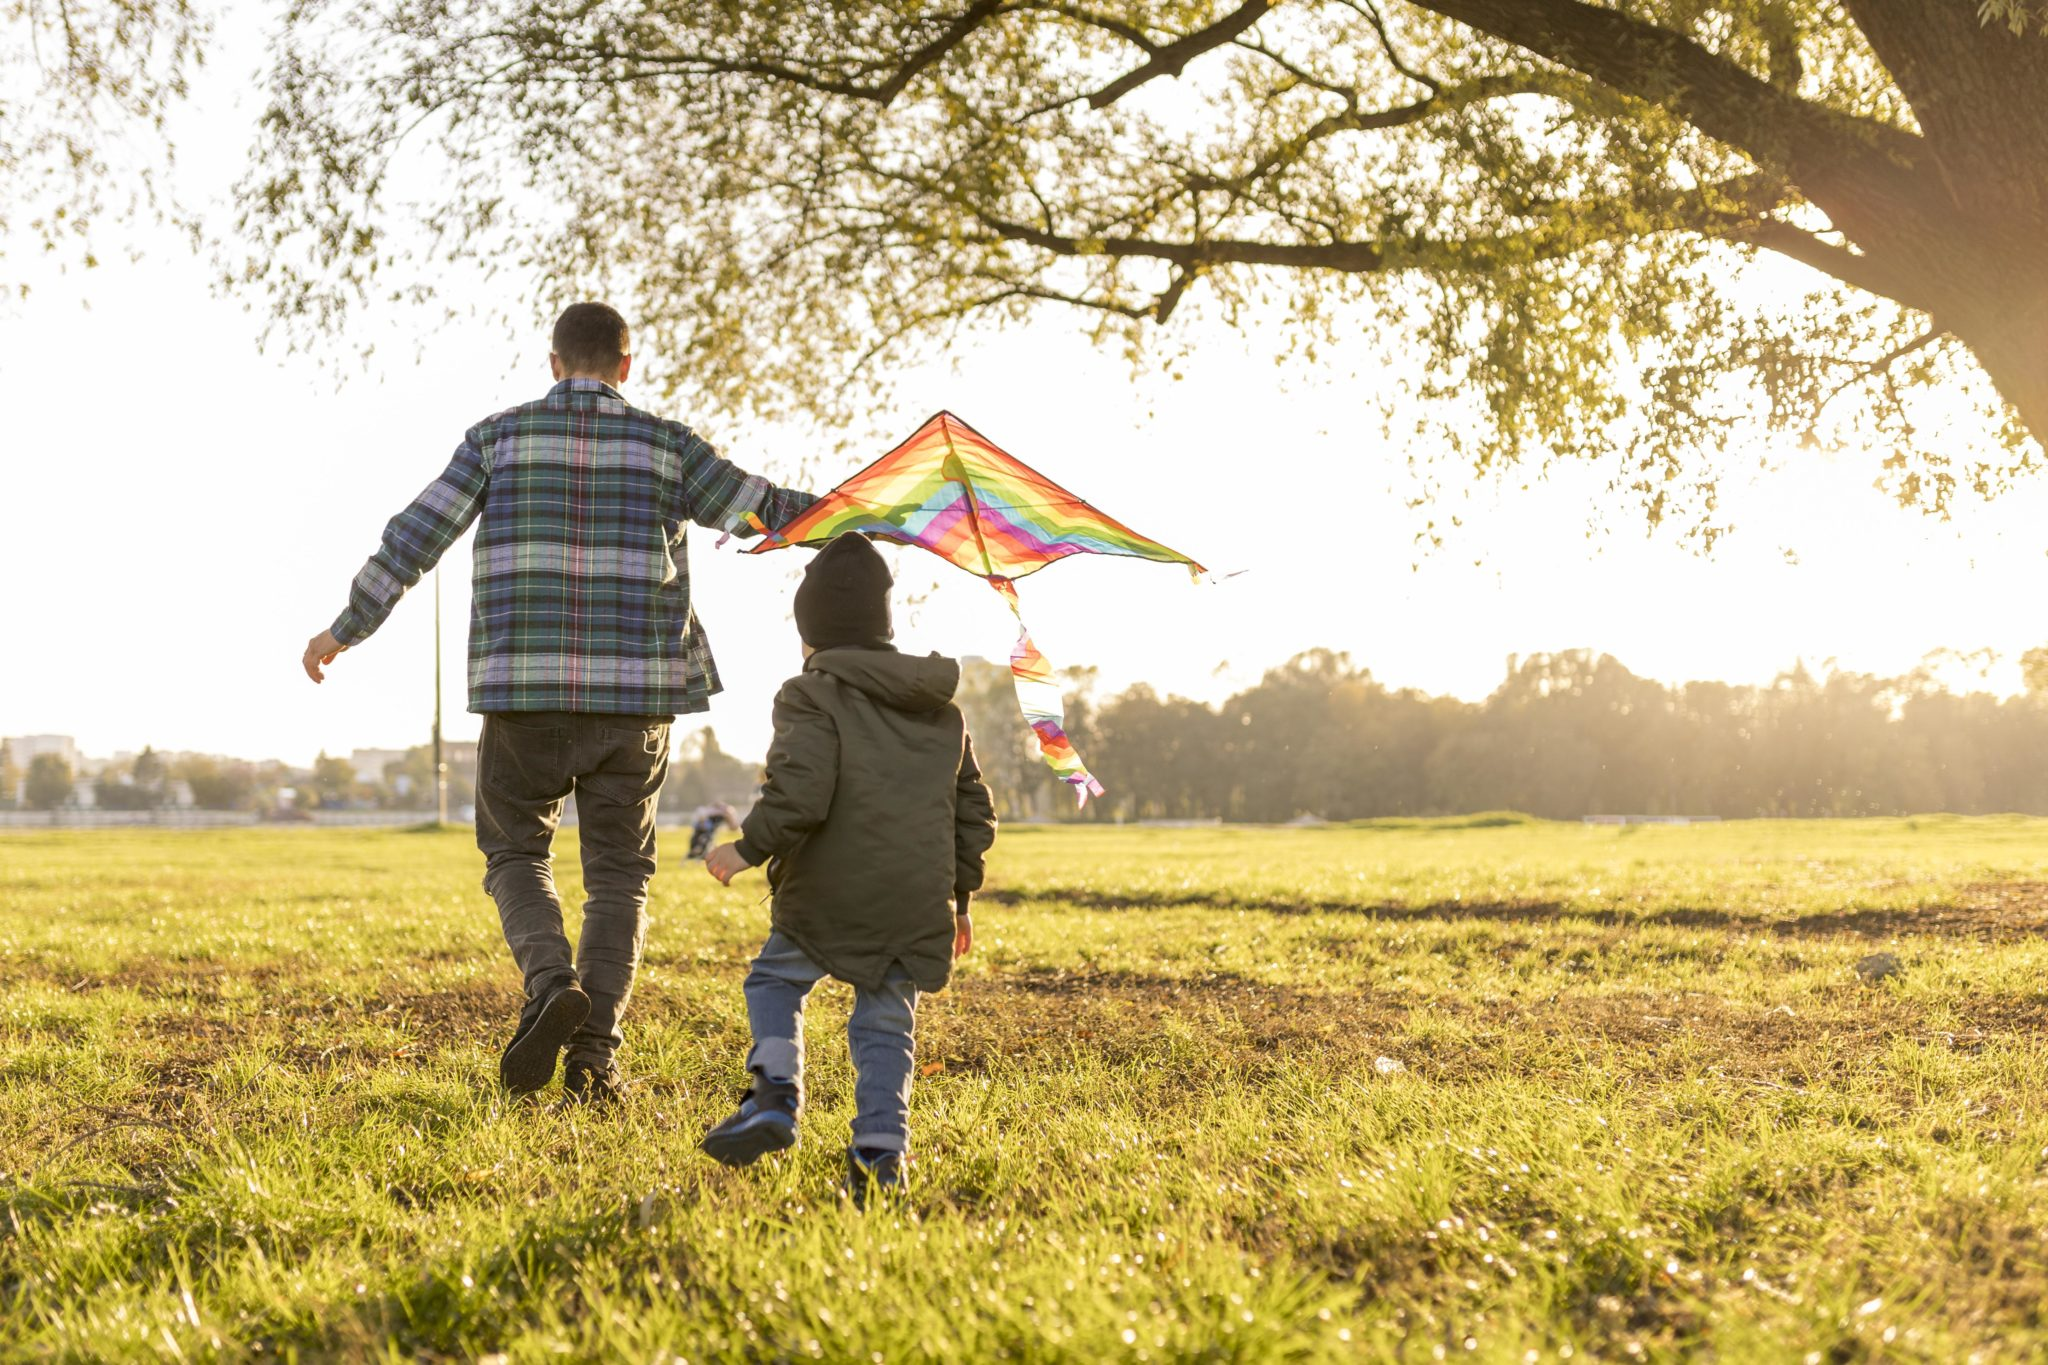 Father and son playing with a kite in a field in the summer